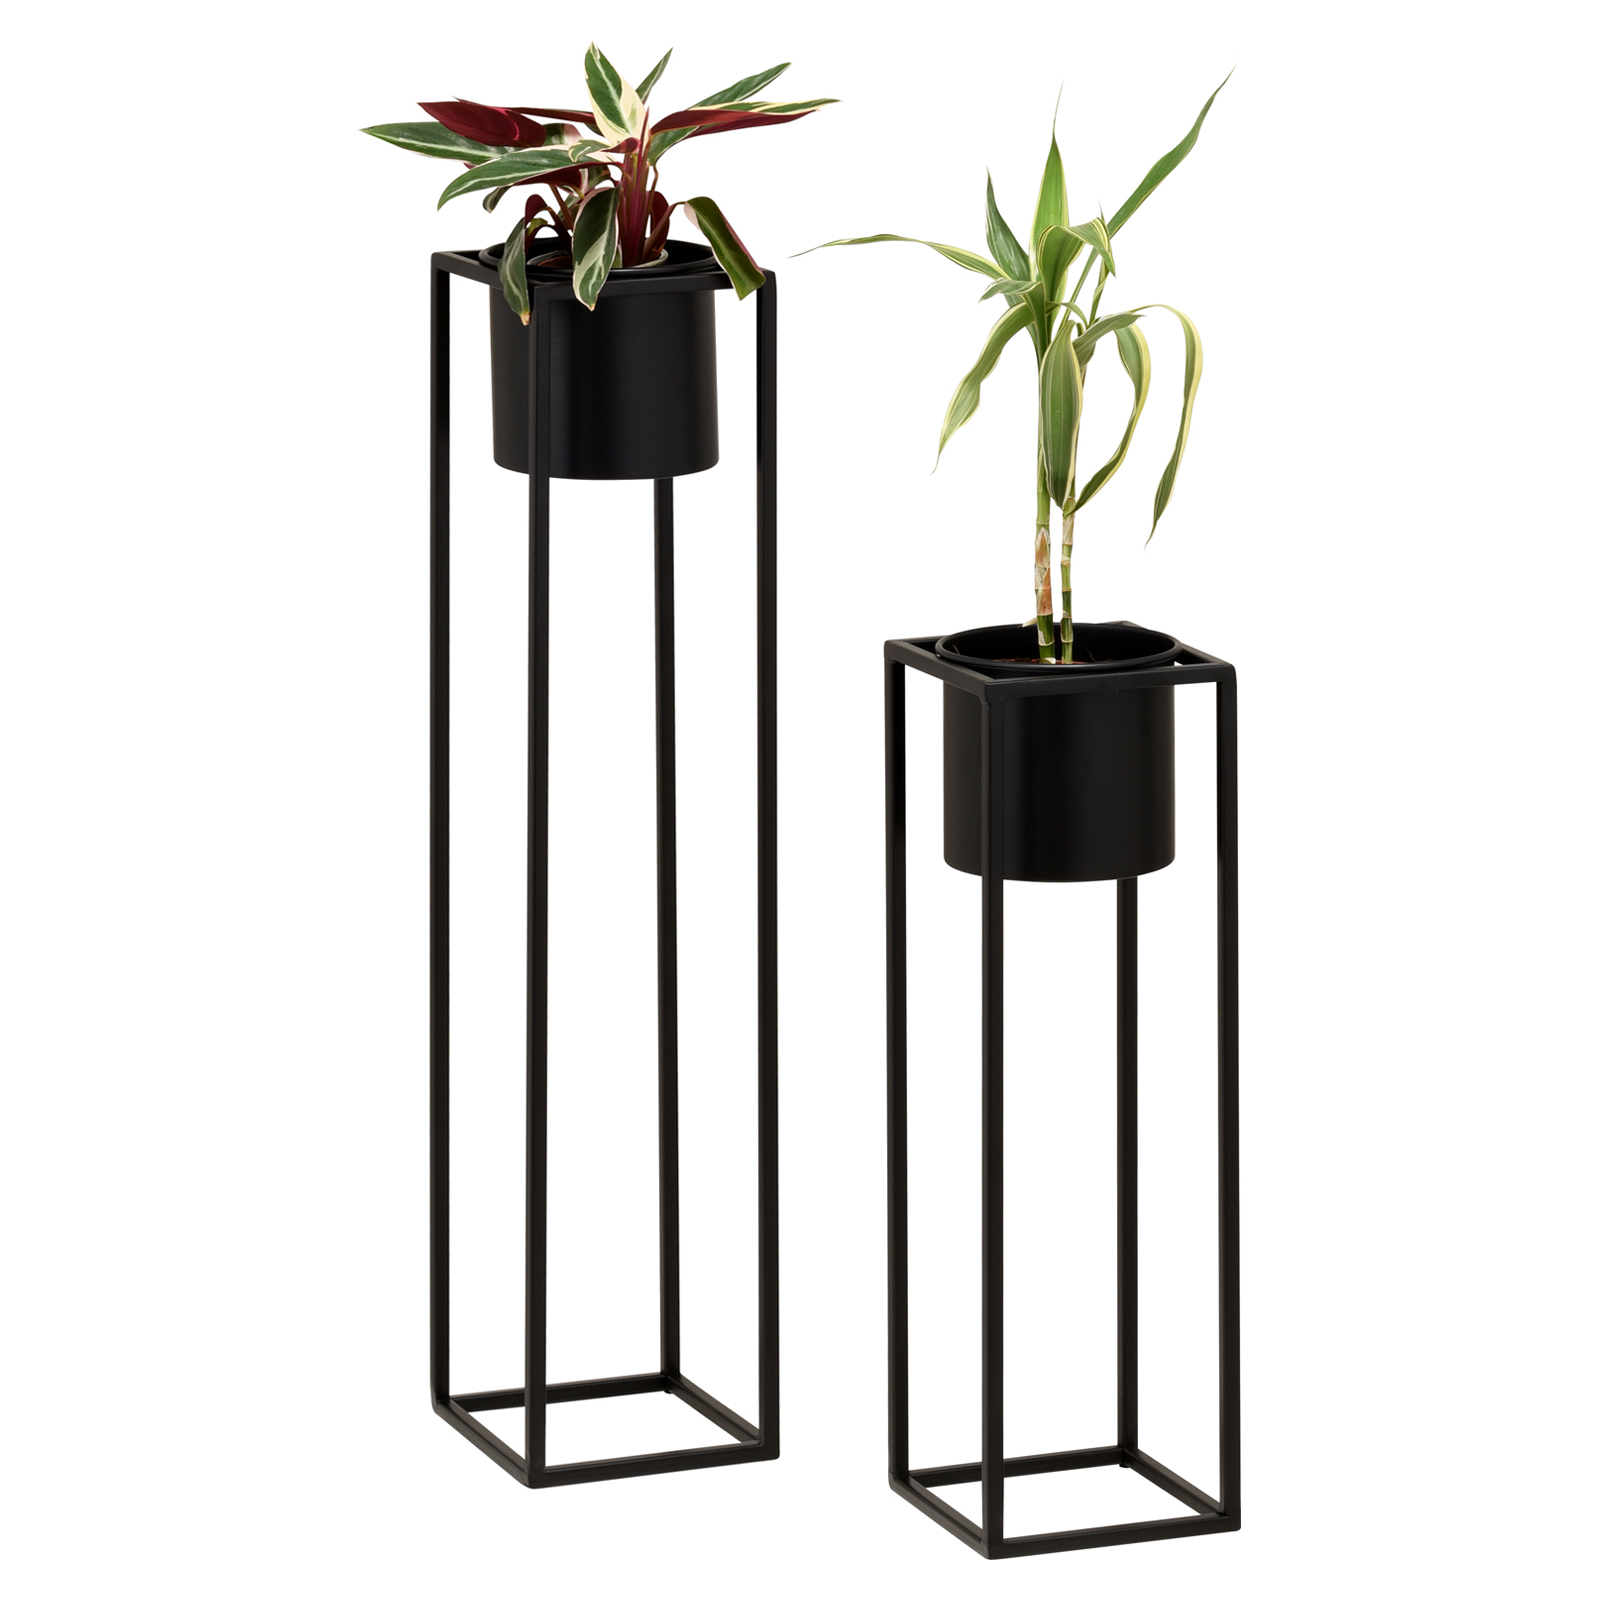 Hartleys-Small-Round-Freestanding-Black-Metal-Plant-Pot-Tall-Square-Floor-Stand thumbnail 14